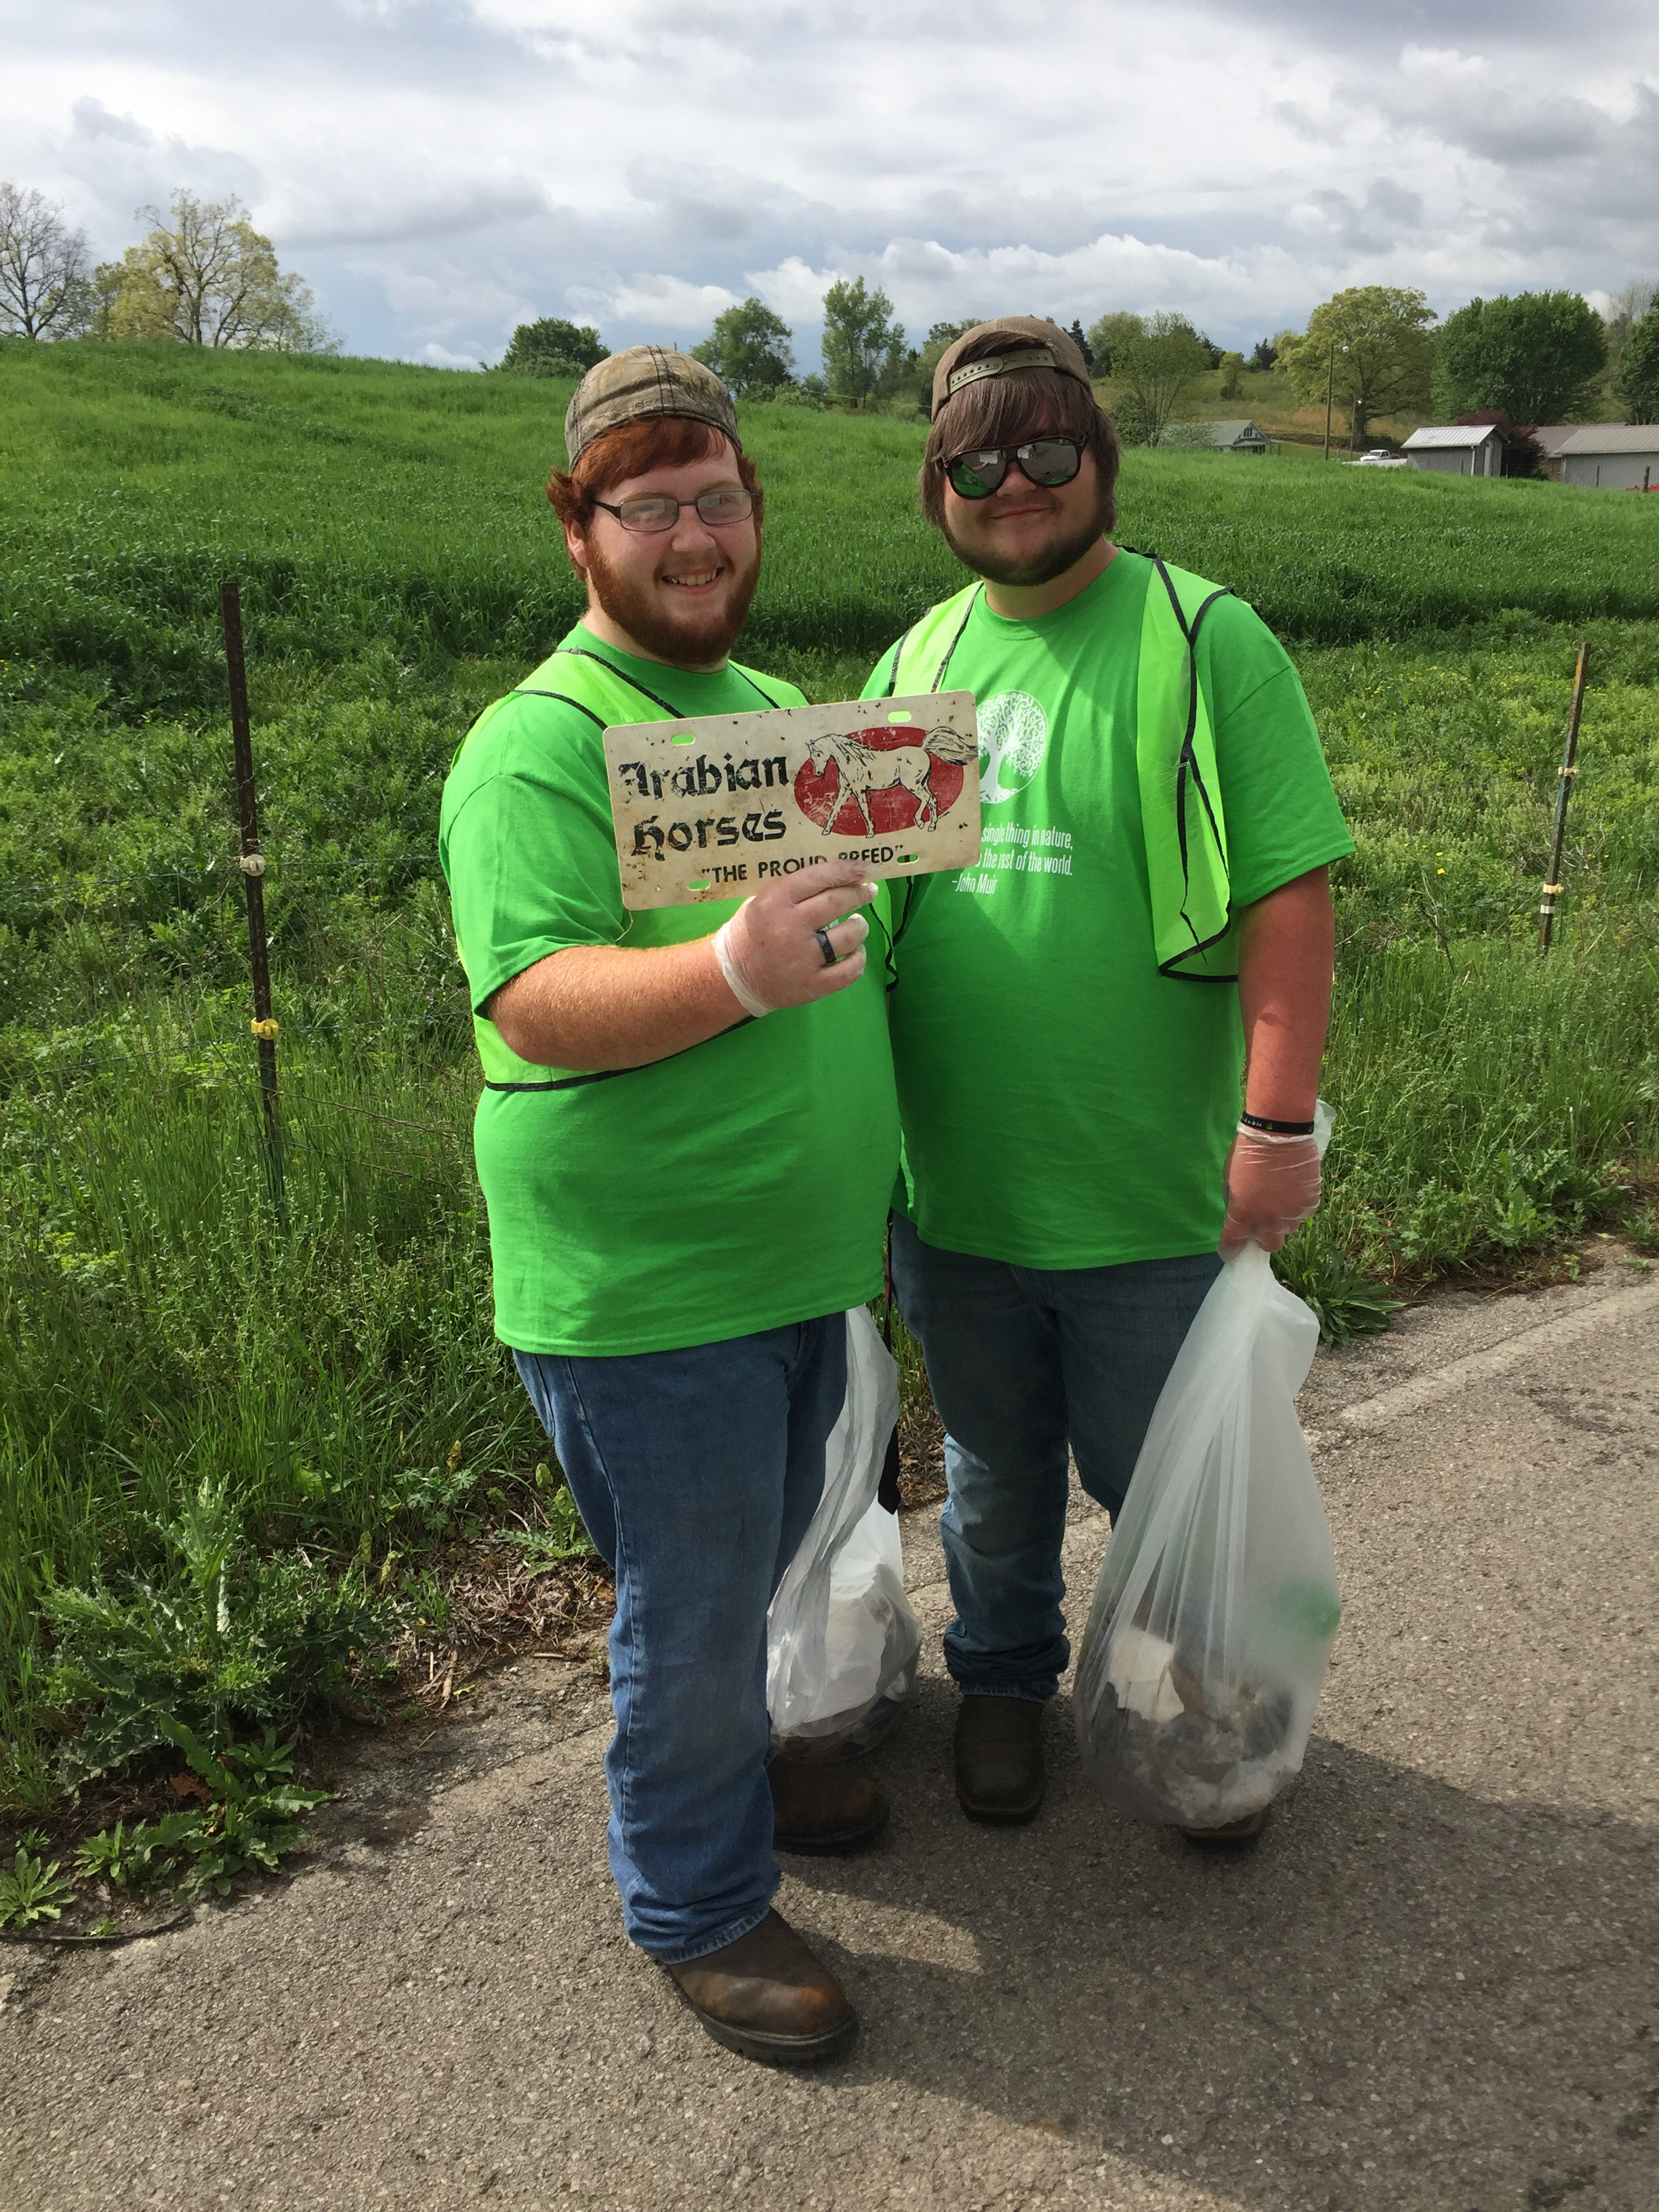 Clinton County High School partnered with Keystone Foods for an Earth Day celebration on Friday, April 21st.